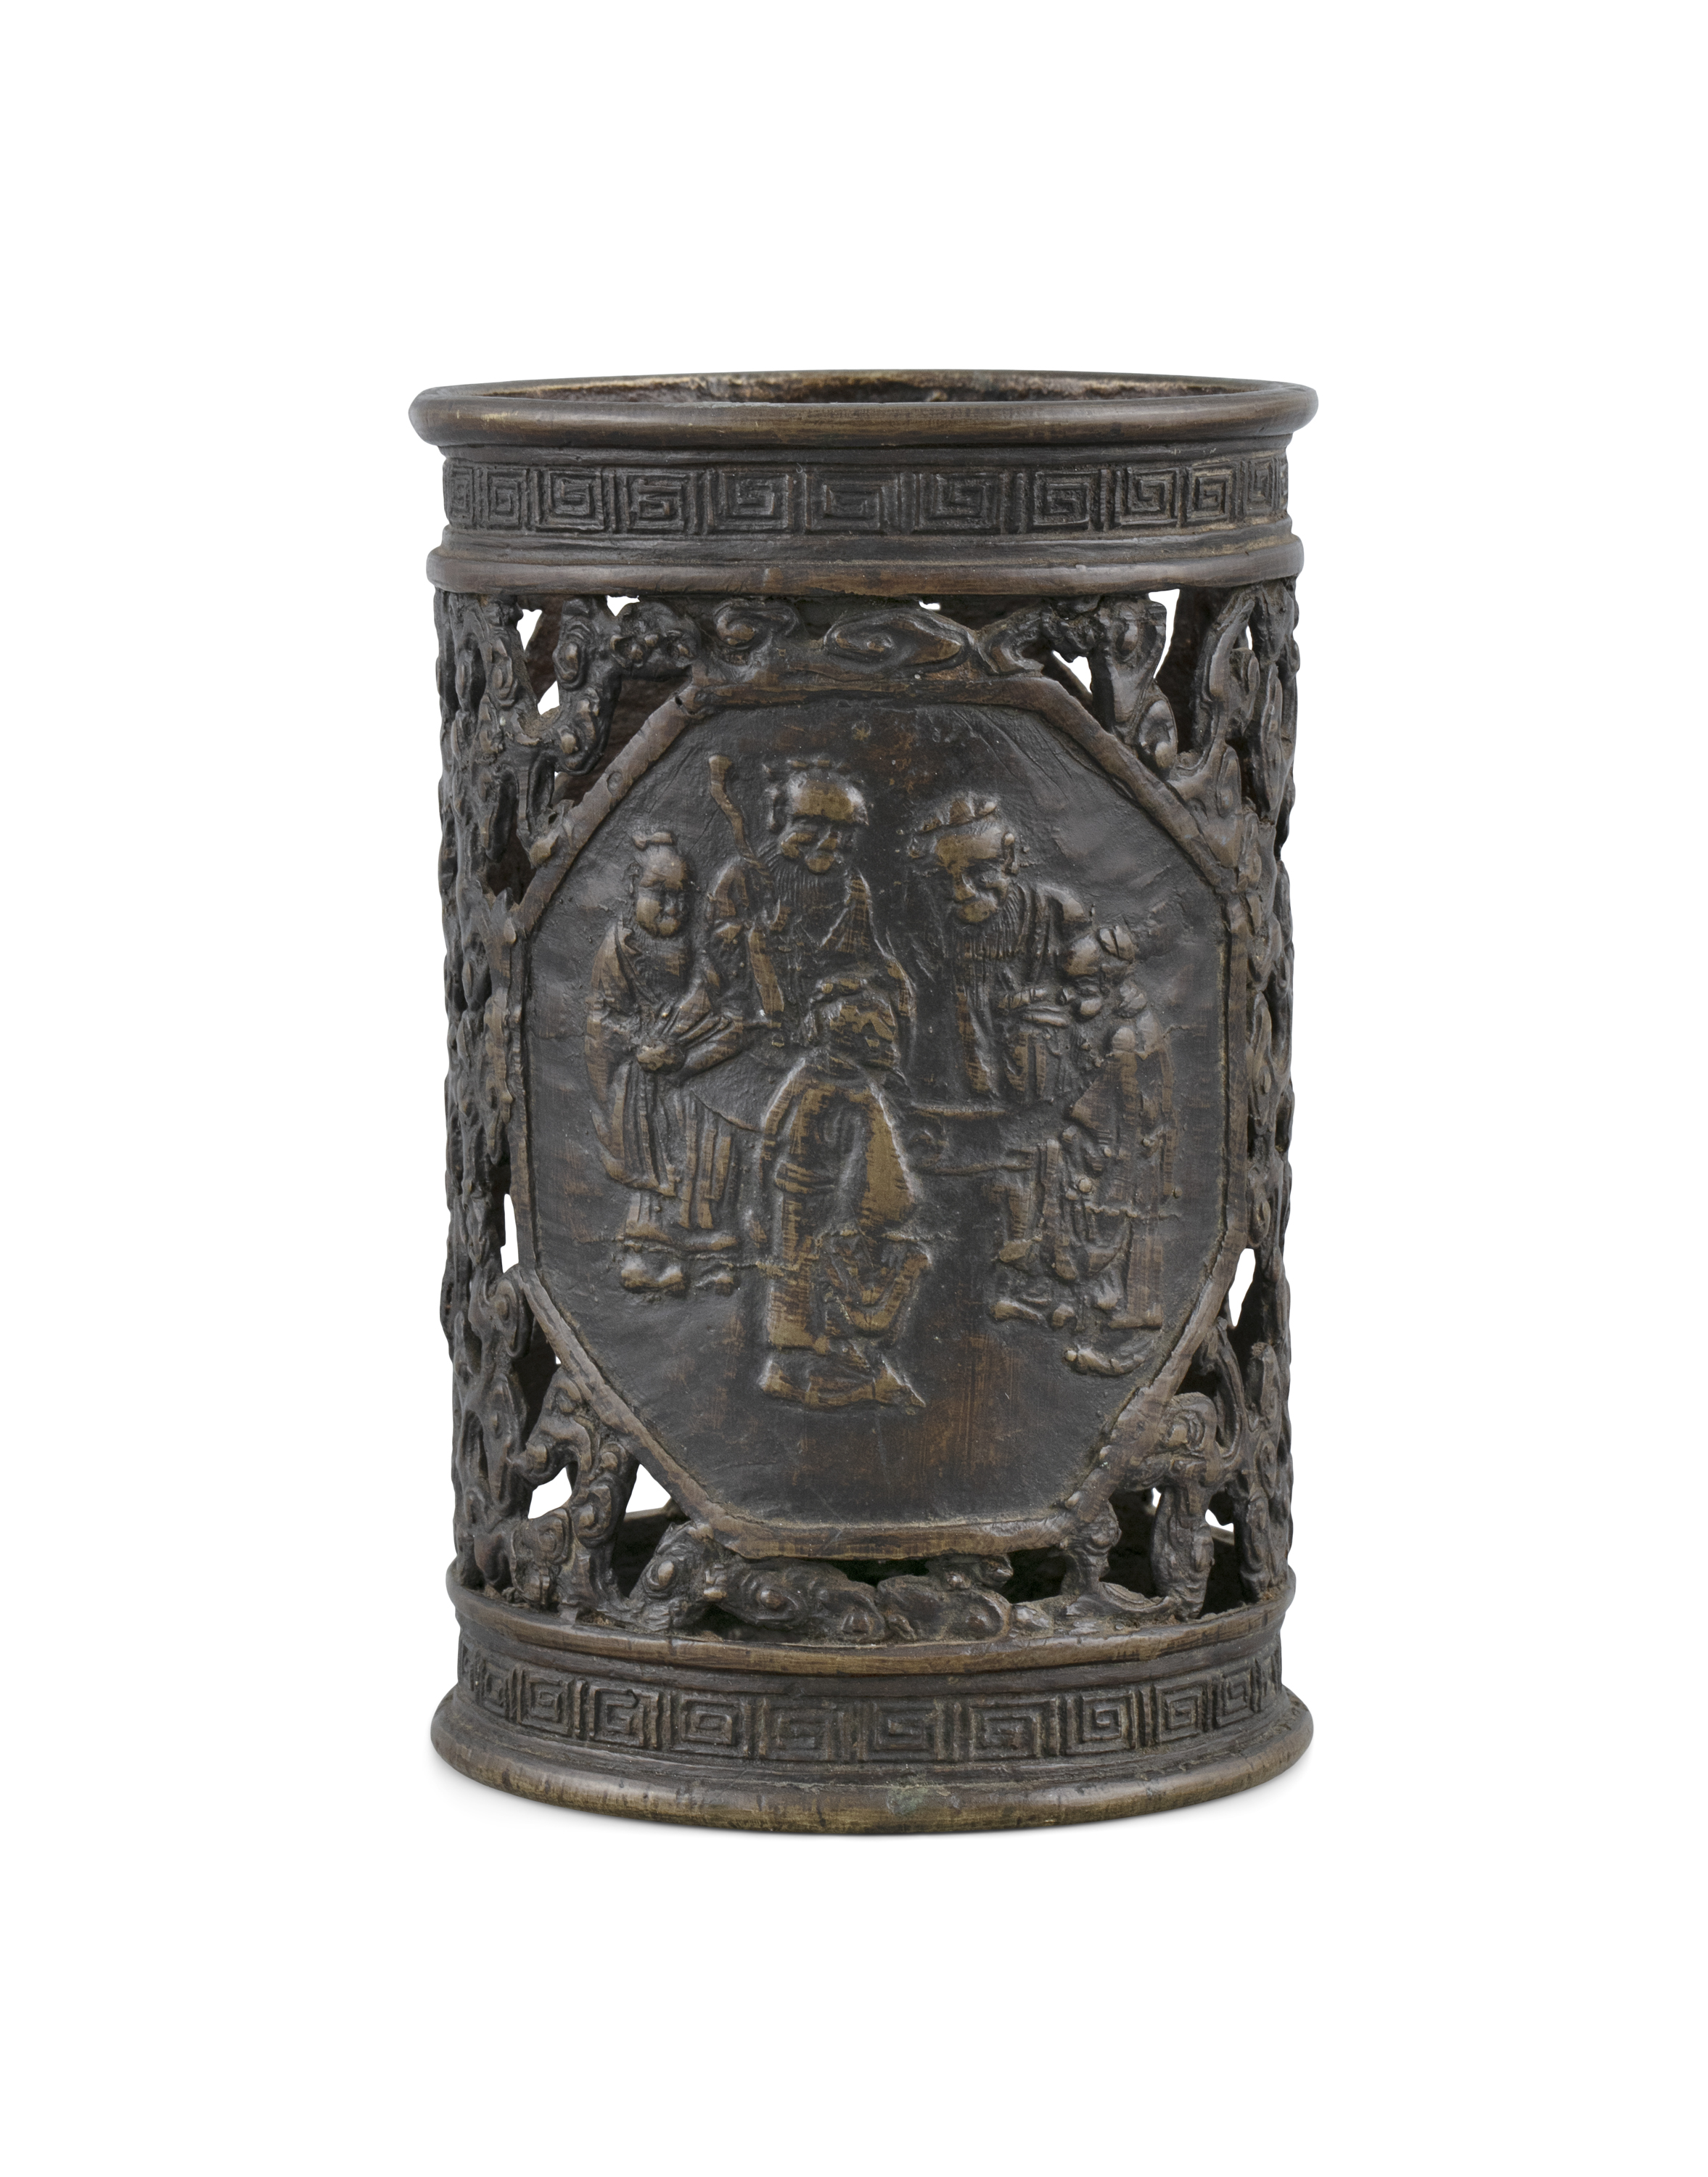 A PARCEL RETICULATED BROWN-PATINA BRONZE 'IMMORTALS' BRUSHPOT China, late Qing Dynasty H: 12,3 - Image 2 of 11